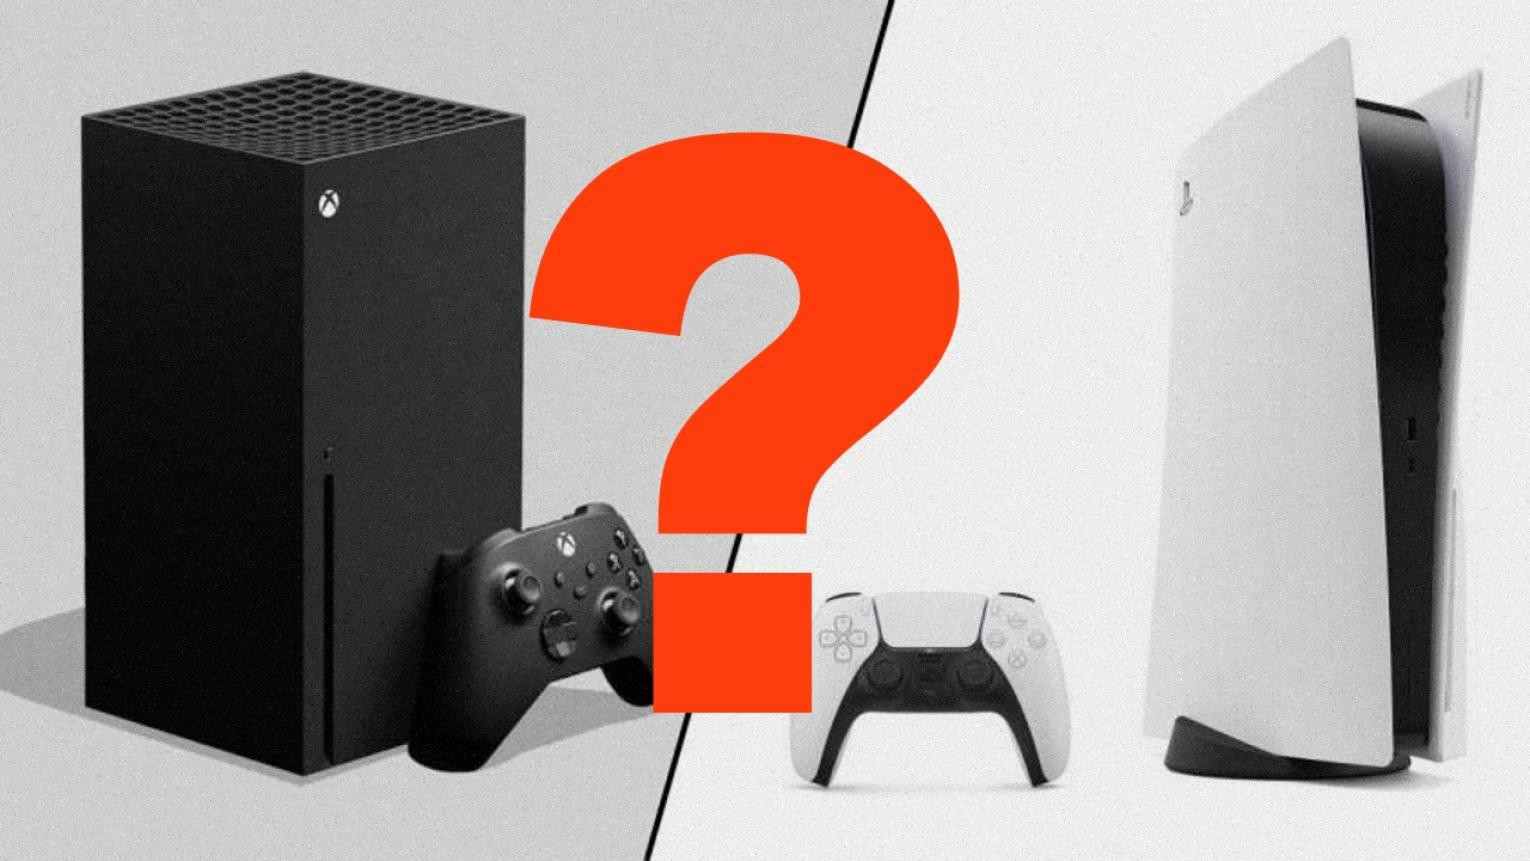 What S To Blame For The Lack Of Hype For The Ps5 Xbox Series X By Pcmag Pc Magazine Medium